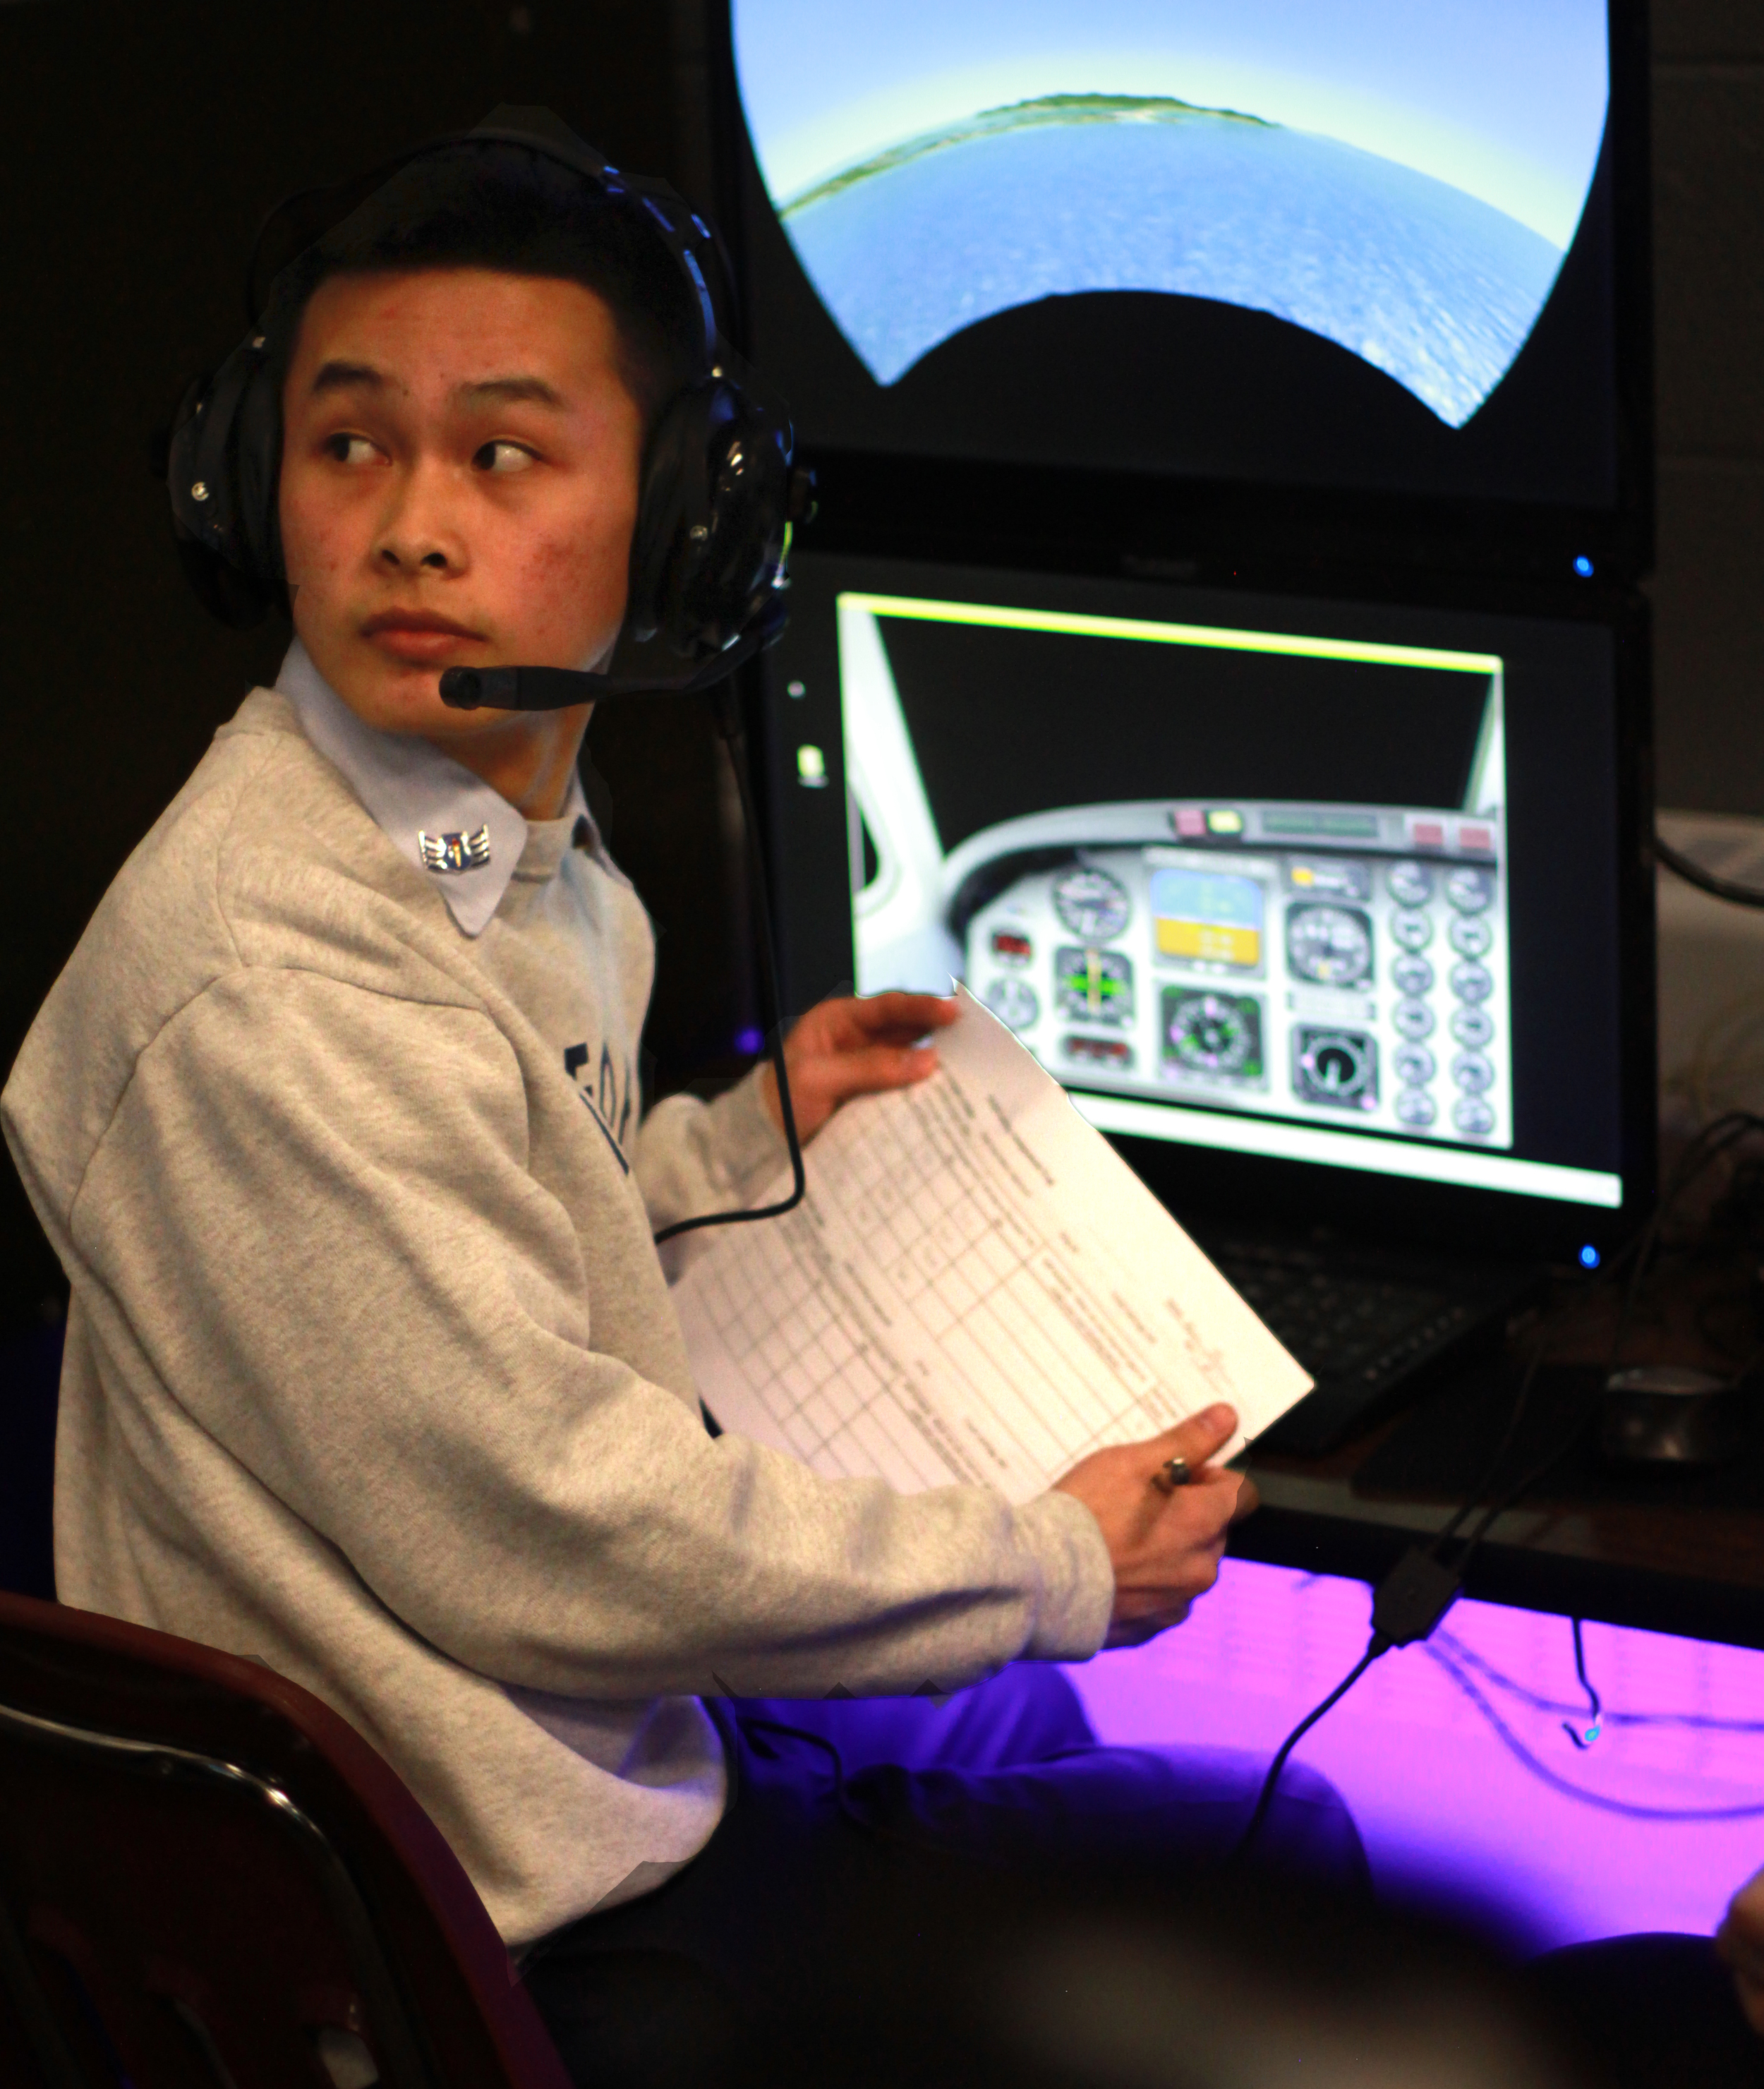 Student Flight Controller at Flight Control Station (FCS)